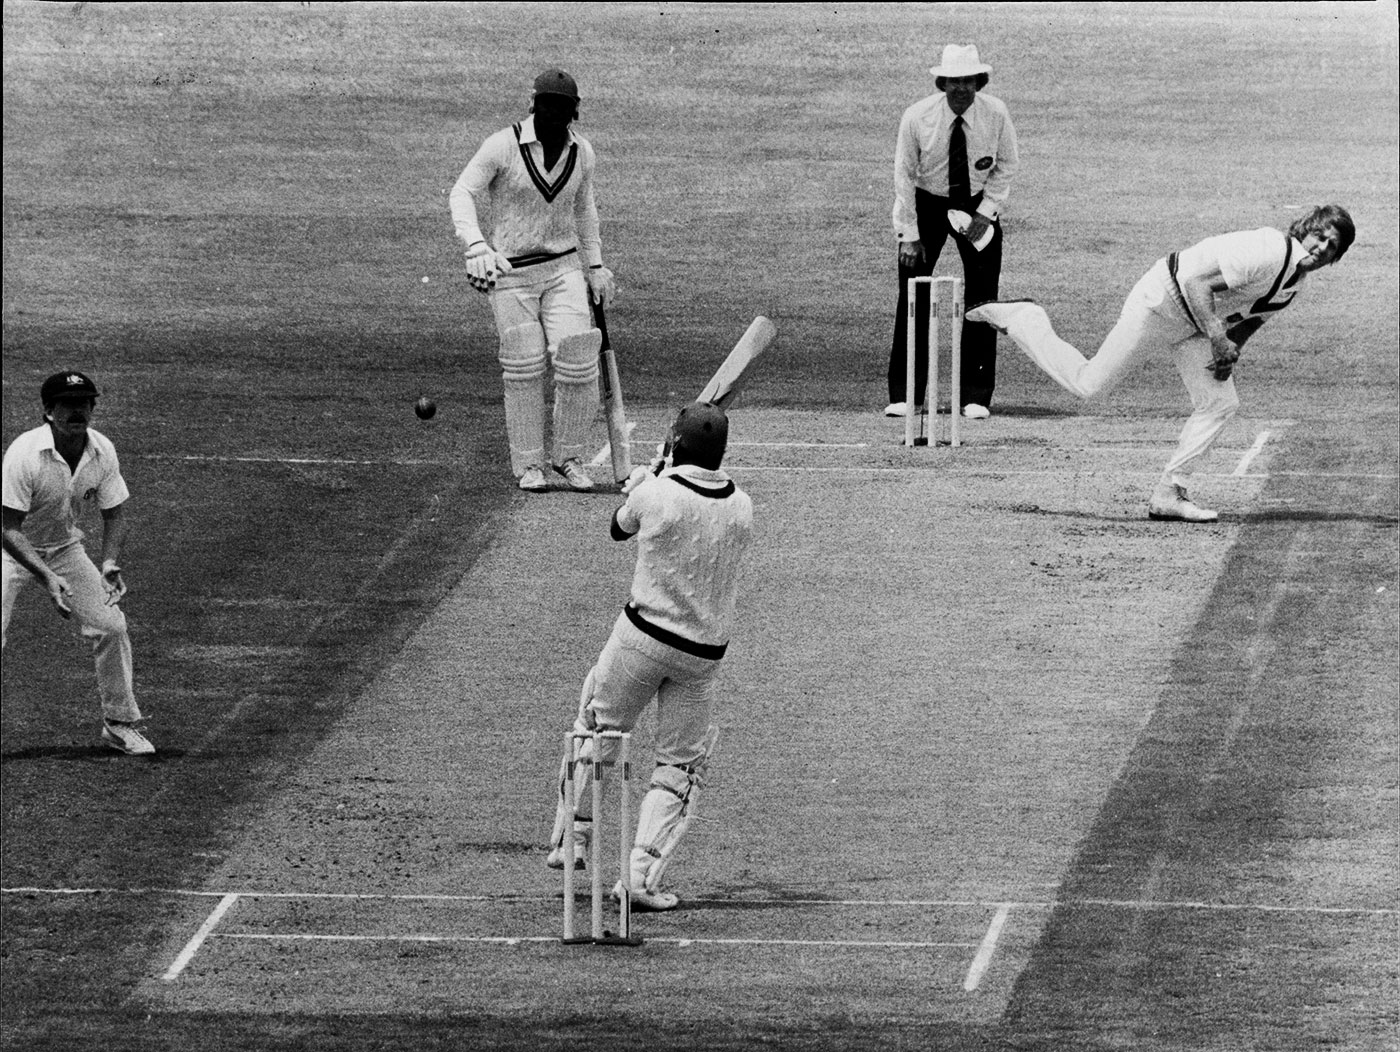 Desmond Haynes, trapped lbw to Jeff Thomson, for 15, Sydney, 1981-82